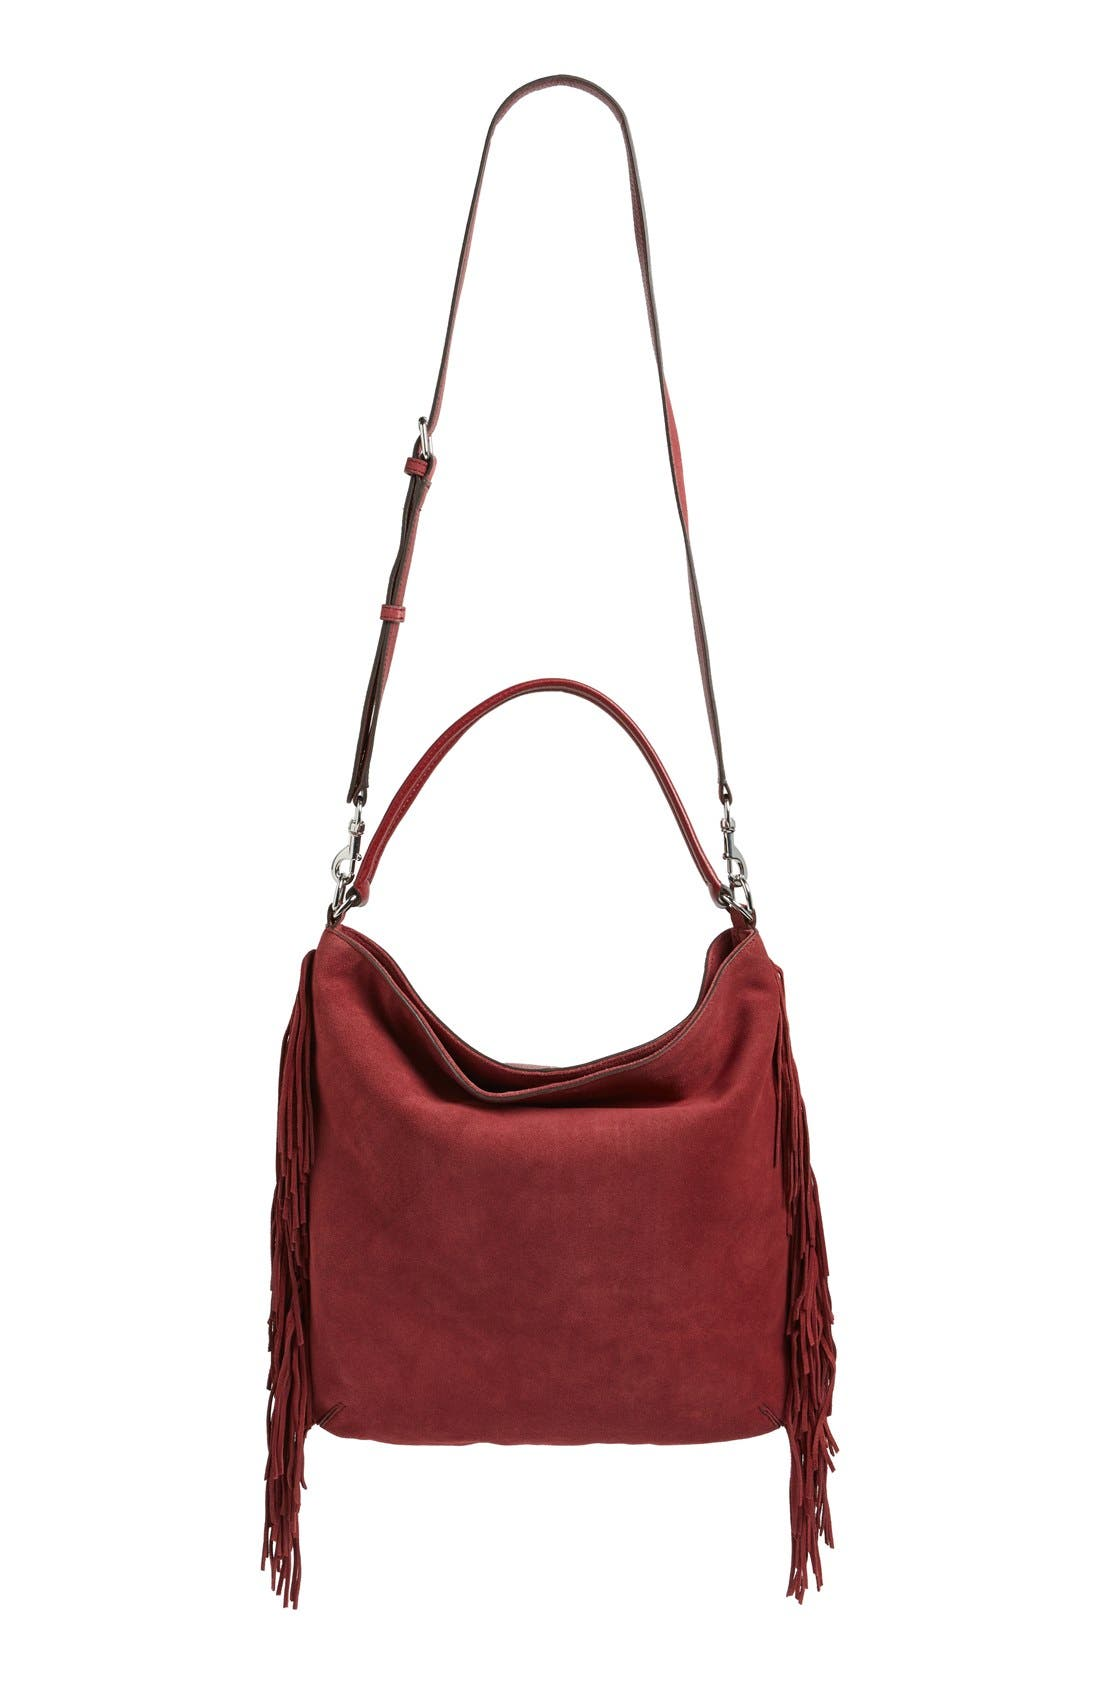 Alternate Image 1 Selected - Rebecca Minkoff Clark Fringe Suede Hobo Bag